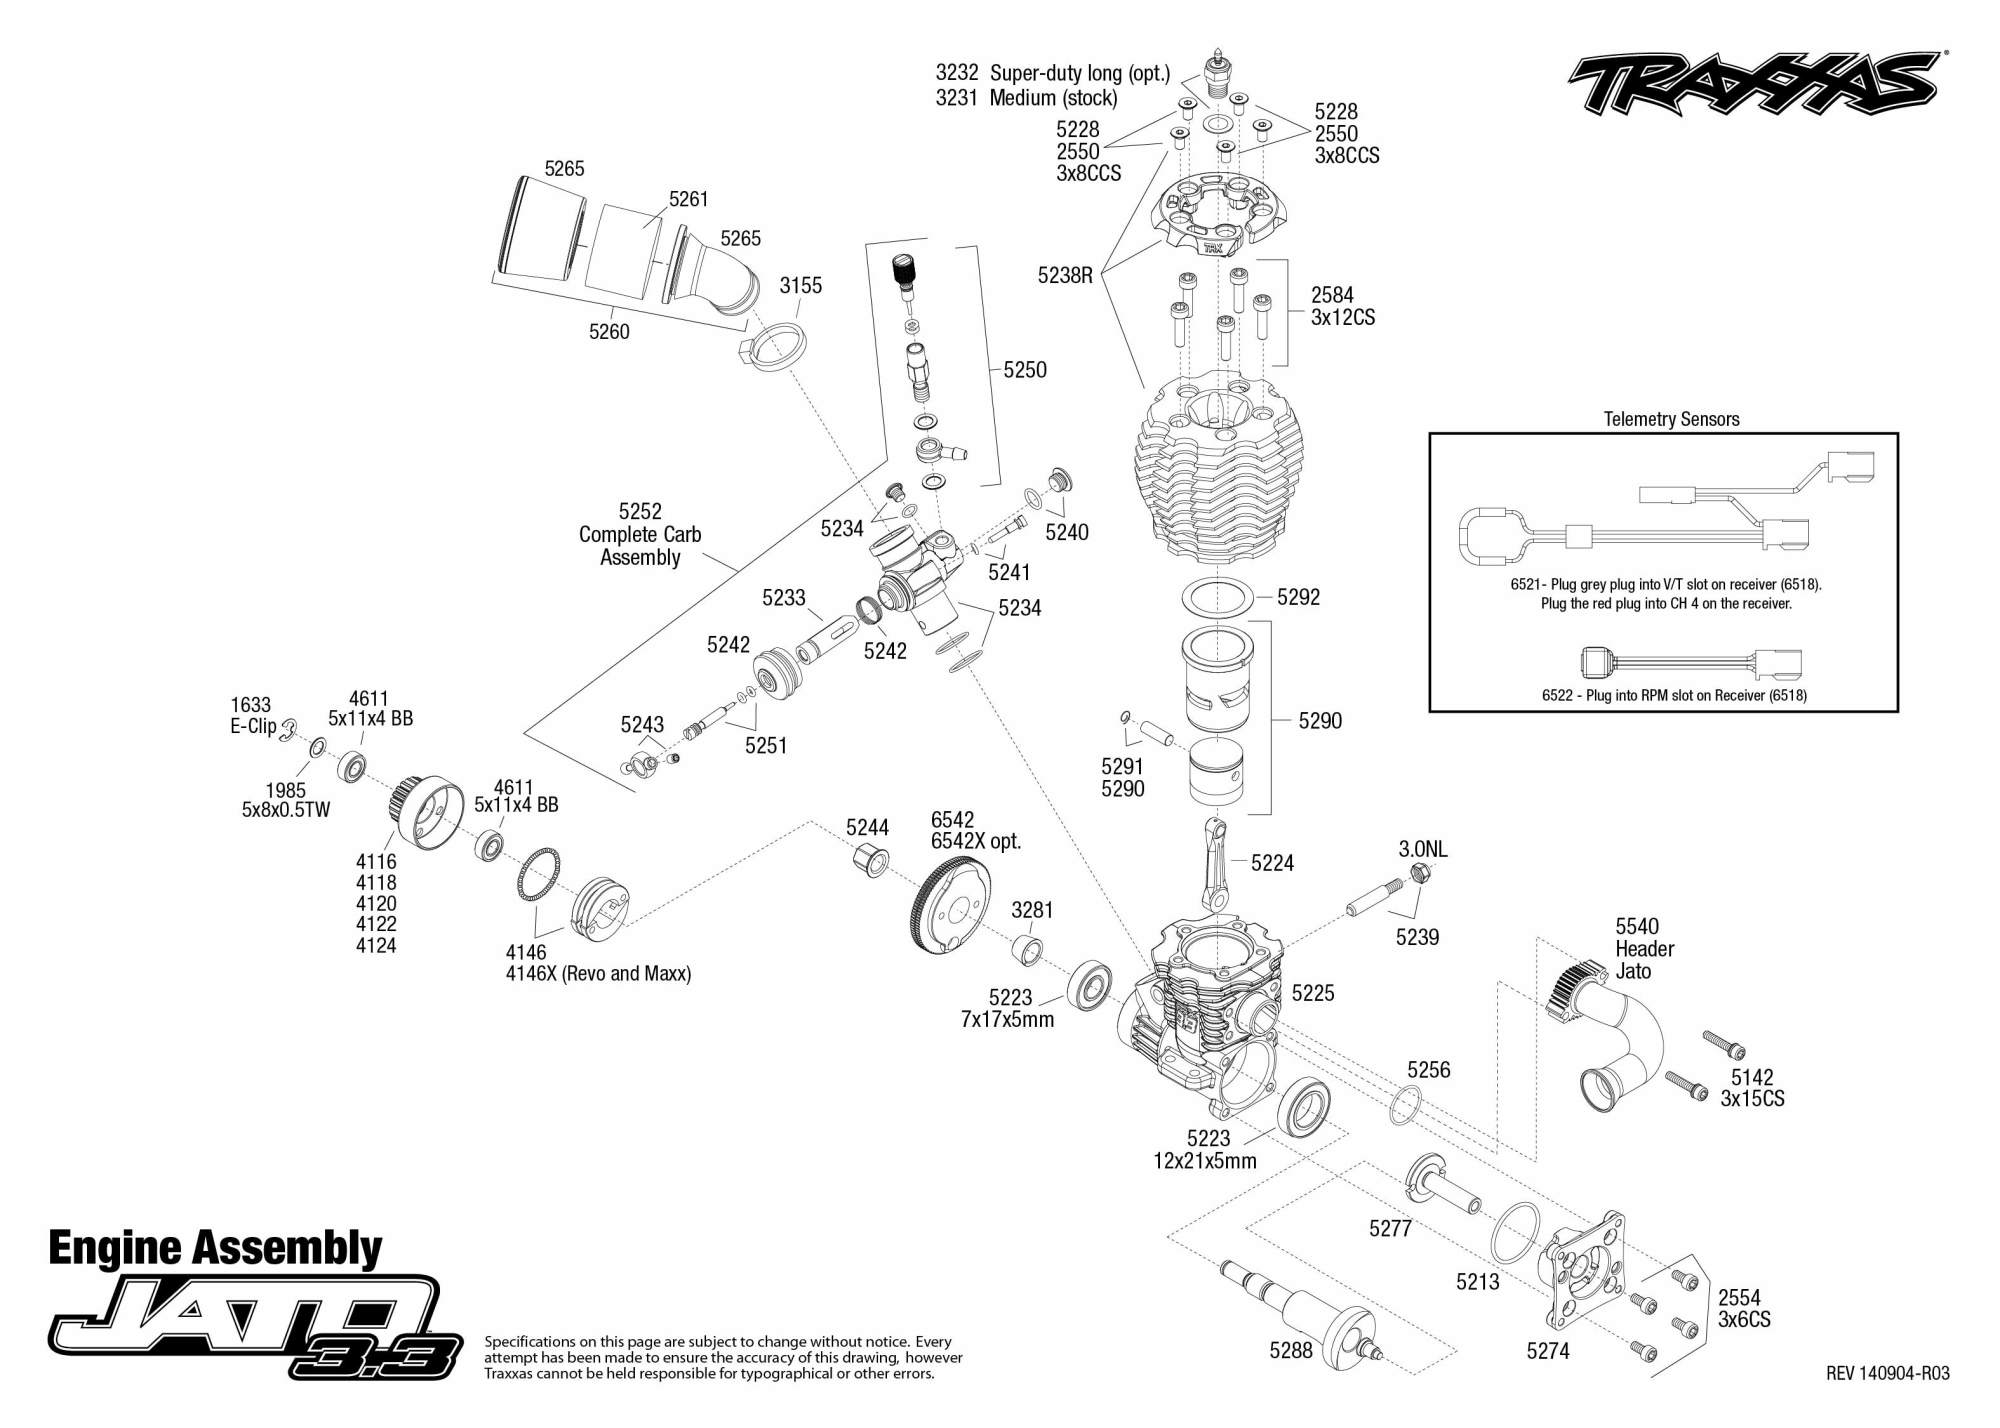 hight resolution of 5507 engine exploded view jato 3 3 w tqi 2 4ghz radio traxxas traxxas ez start diagram traxxas 3 3 engine diagram